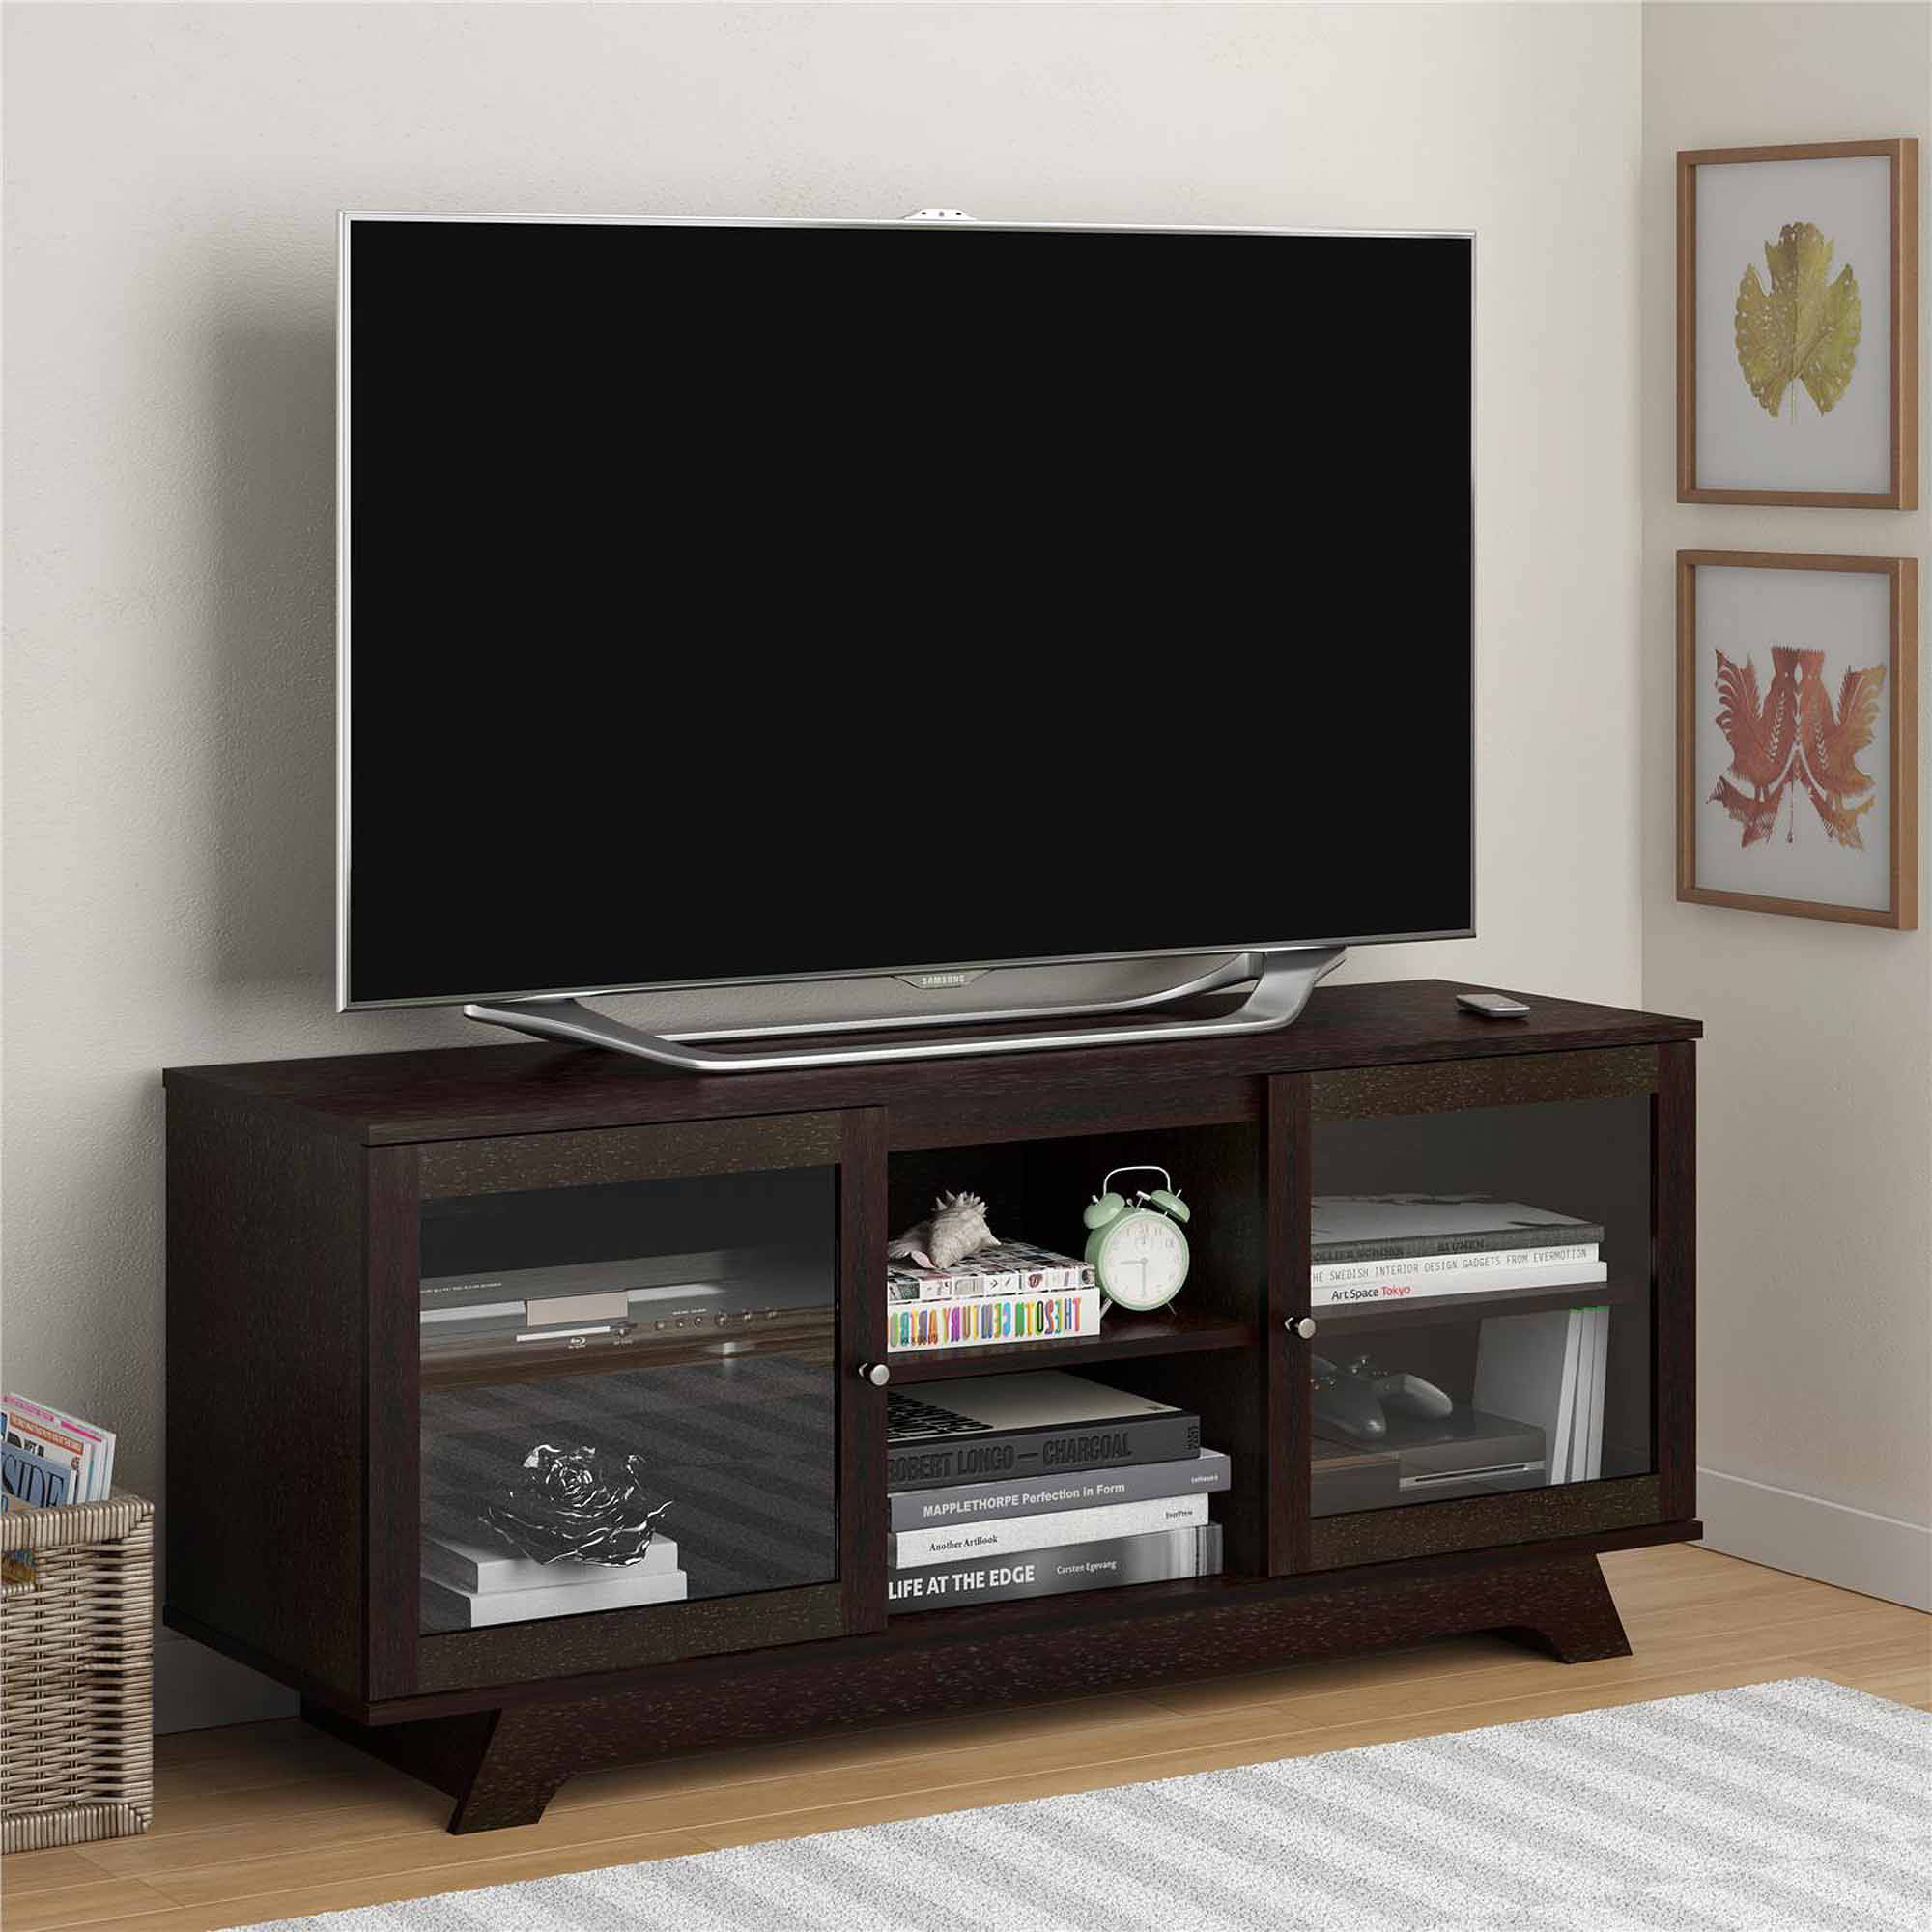 television tables living room furniture.  TV Stands Entertainment Centers Walmart com